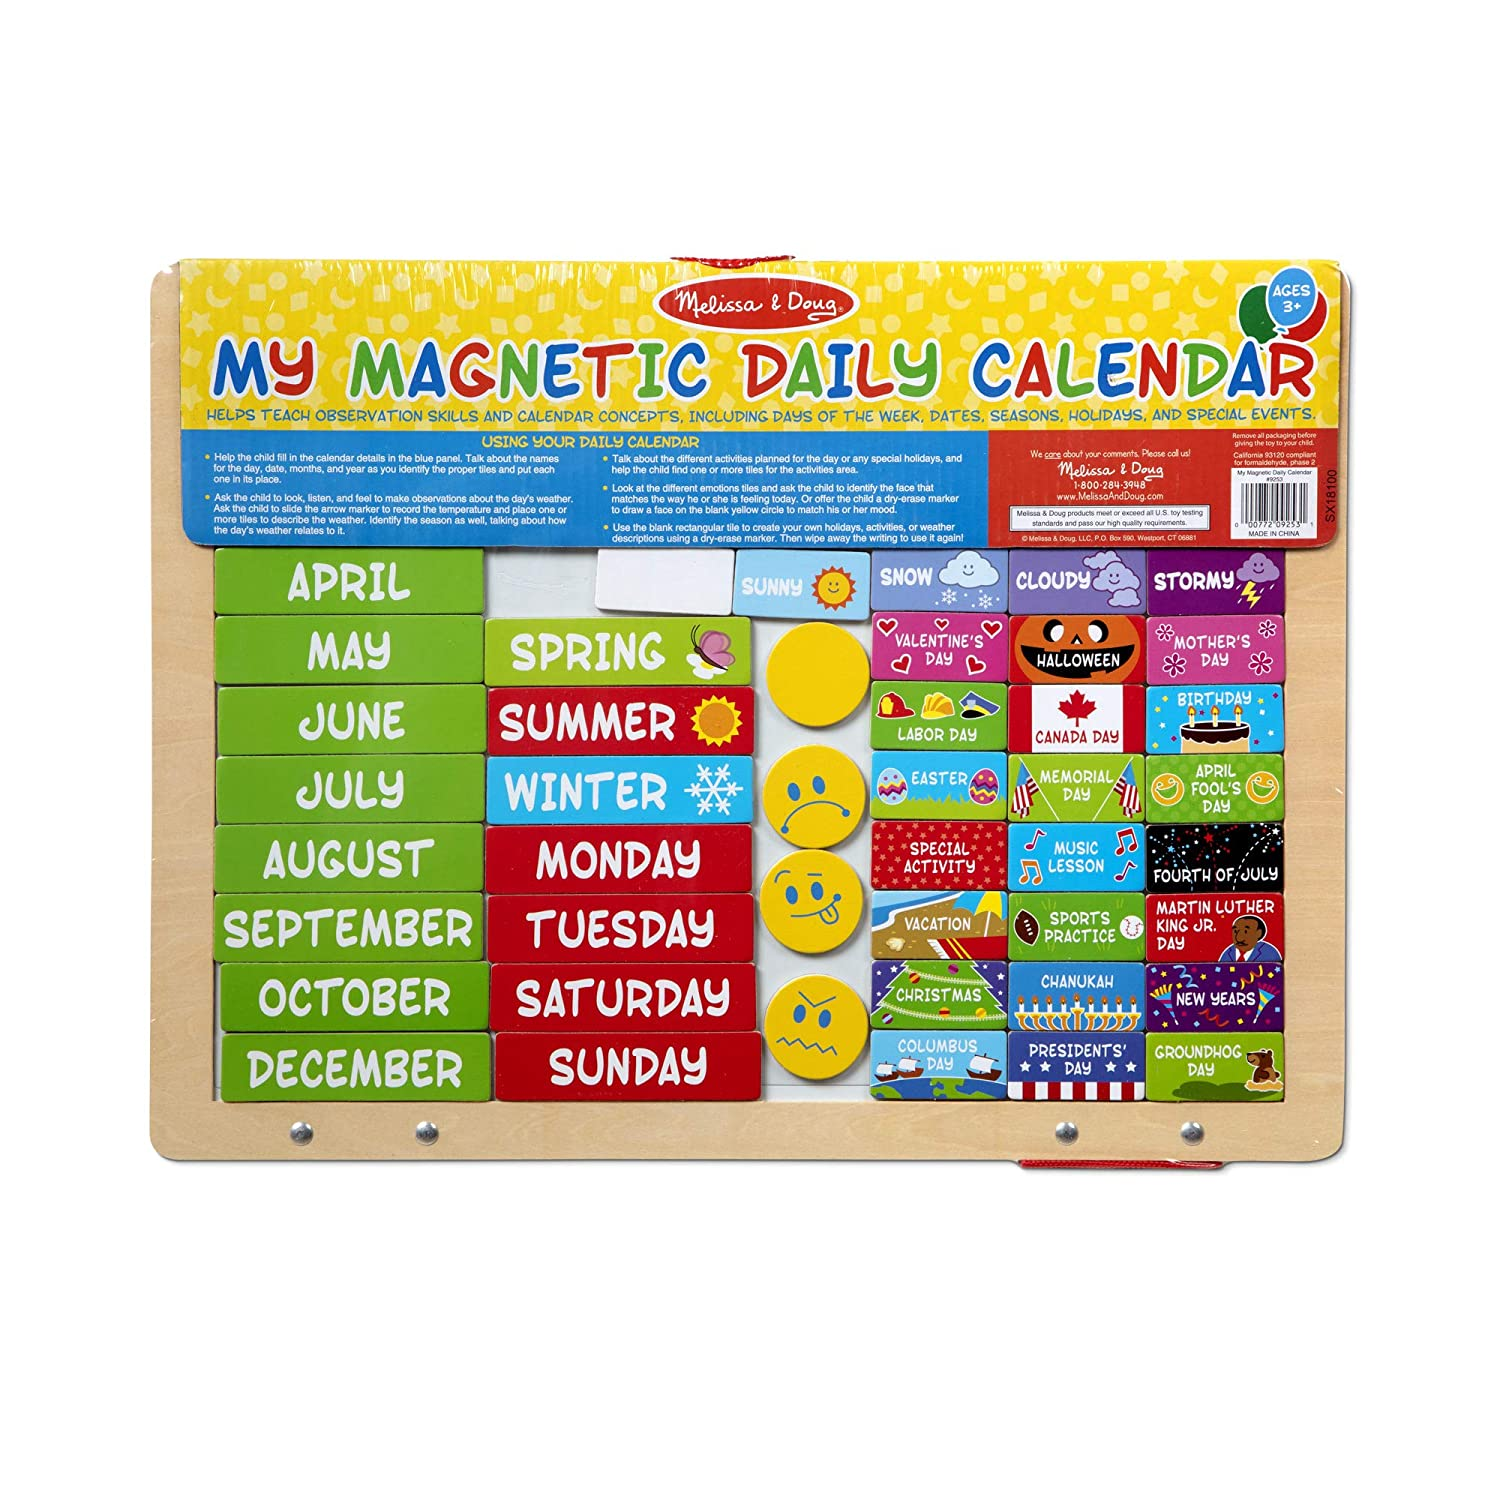 Daily Magnetic Calendar, Fabric-Hinged Dry-Erase Boards, 12 H x 15.75 W x 1 L Seasonal /& Religious Melissa /& Doug My Magnetic Daily Calendar